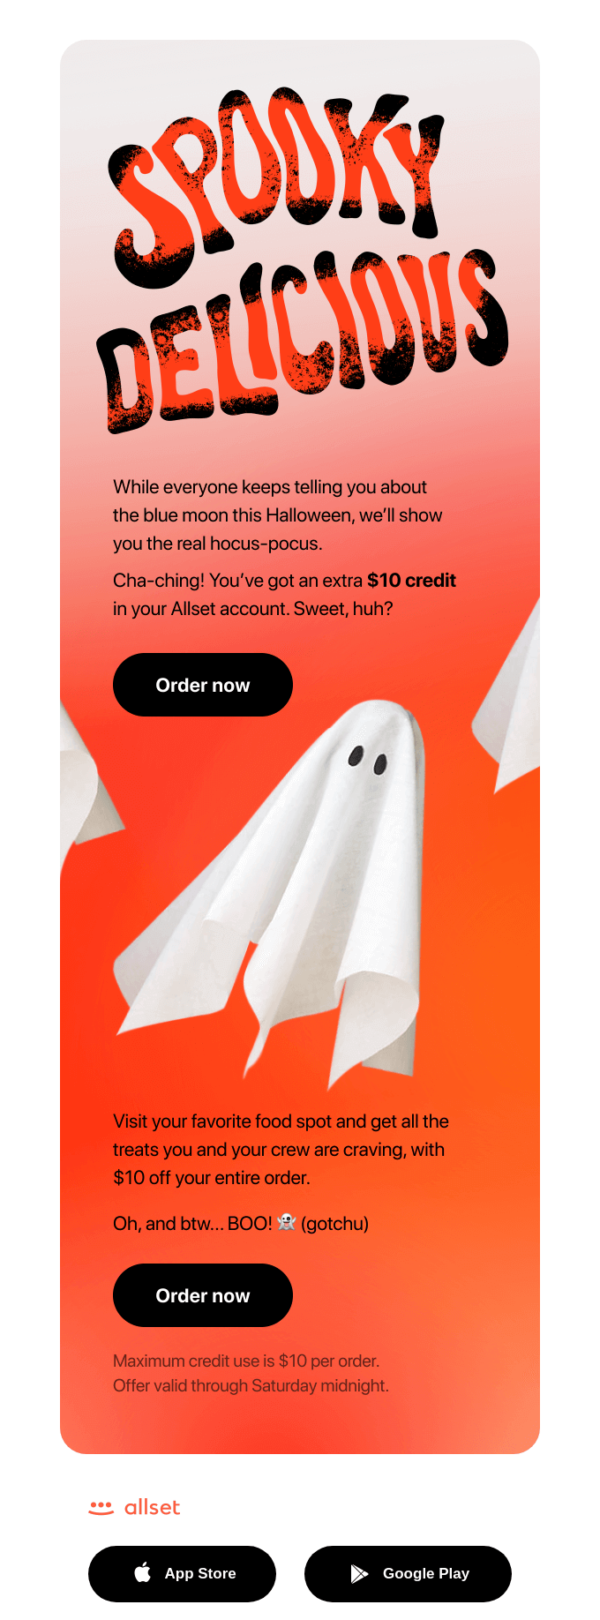 Halloween email by Allset